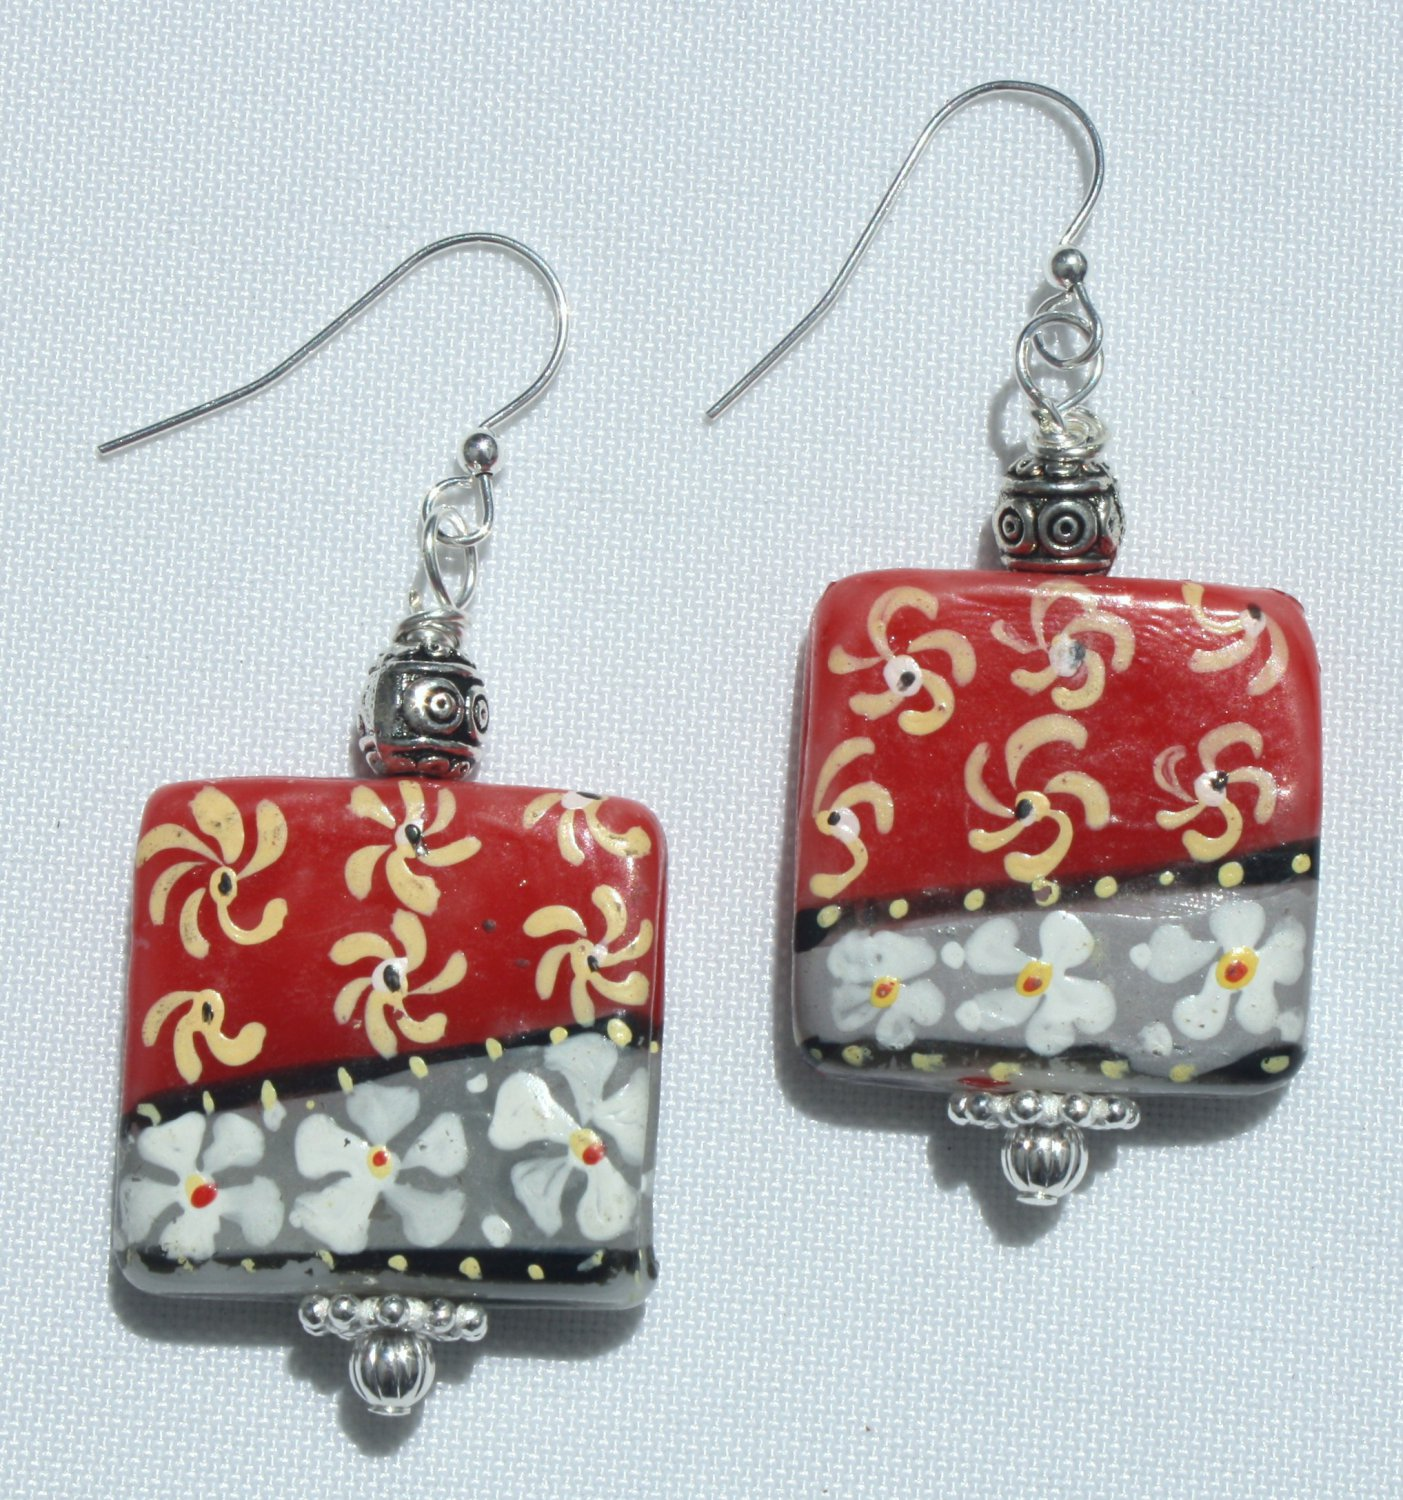 Pinwheel Earrings - Item #E352